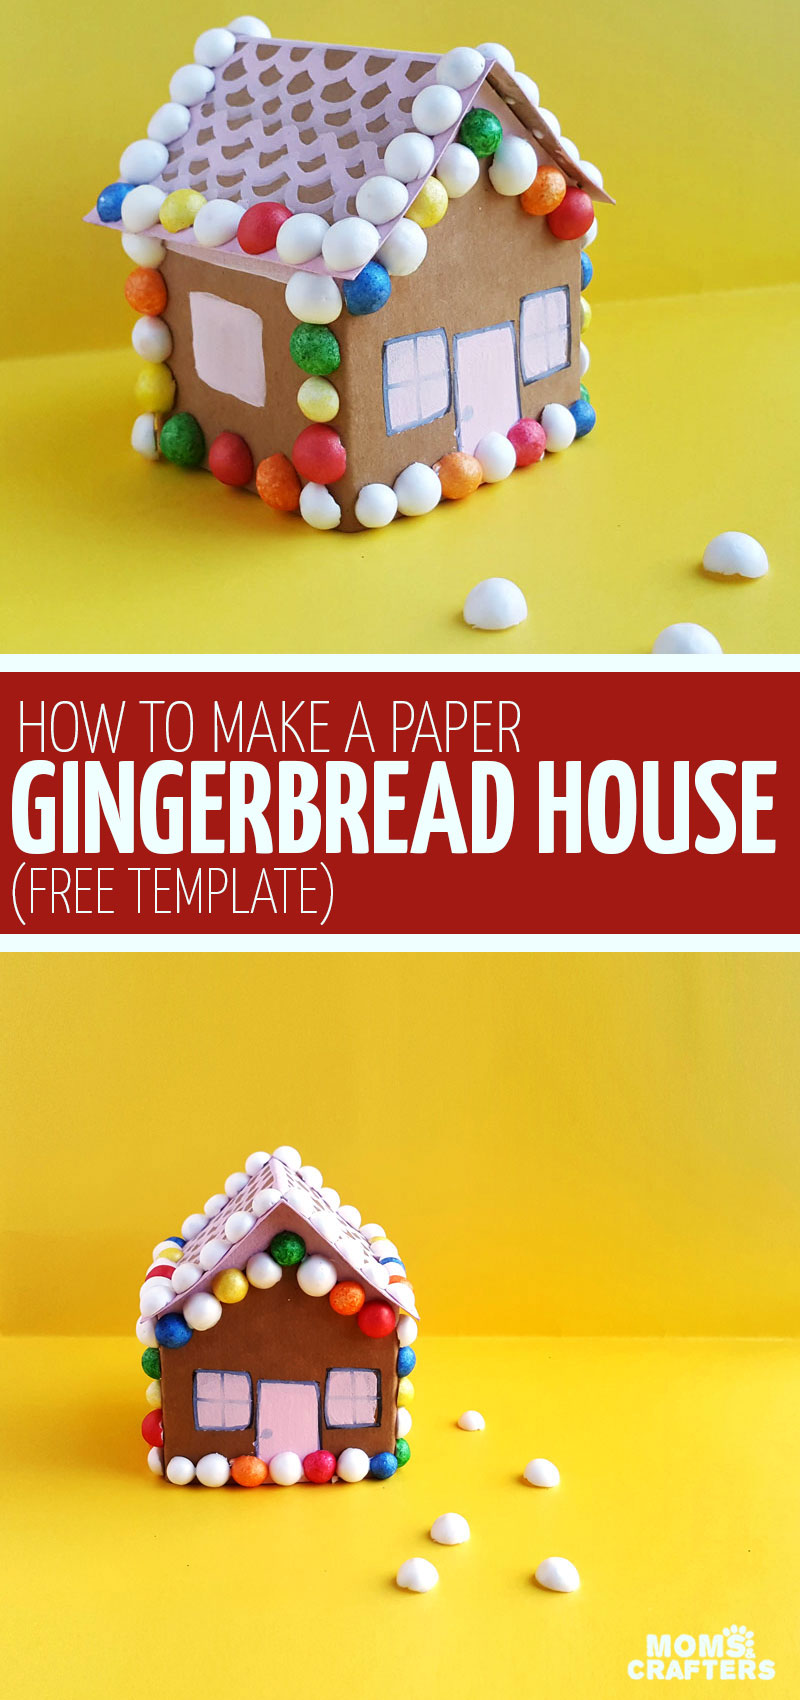 image about Free Printable Paper Crafts referred to as Gingerbread Home Craft towards Paper - Cost-free Printable Template